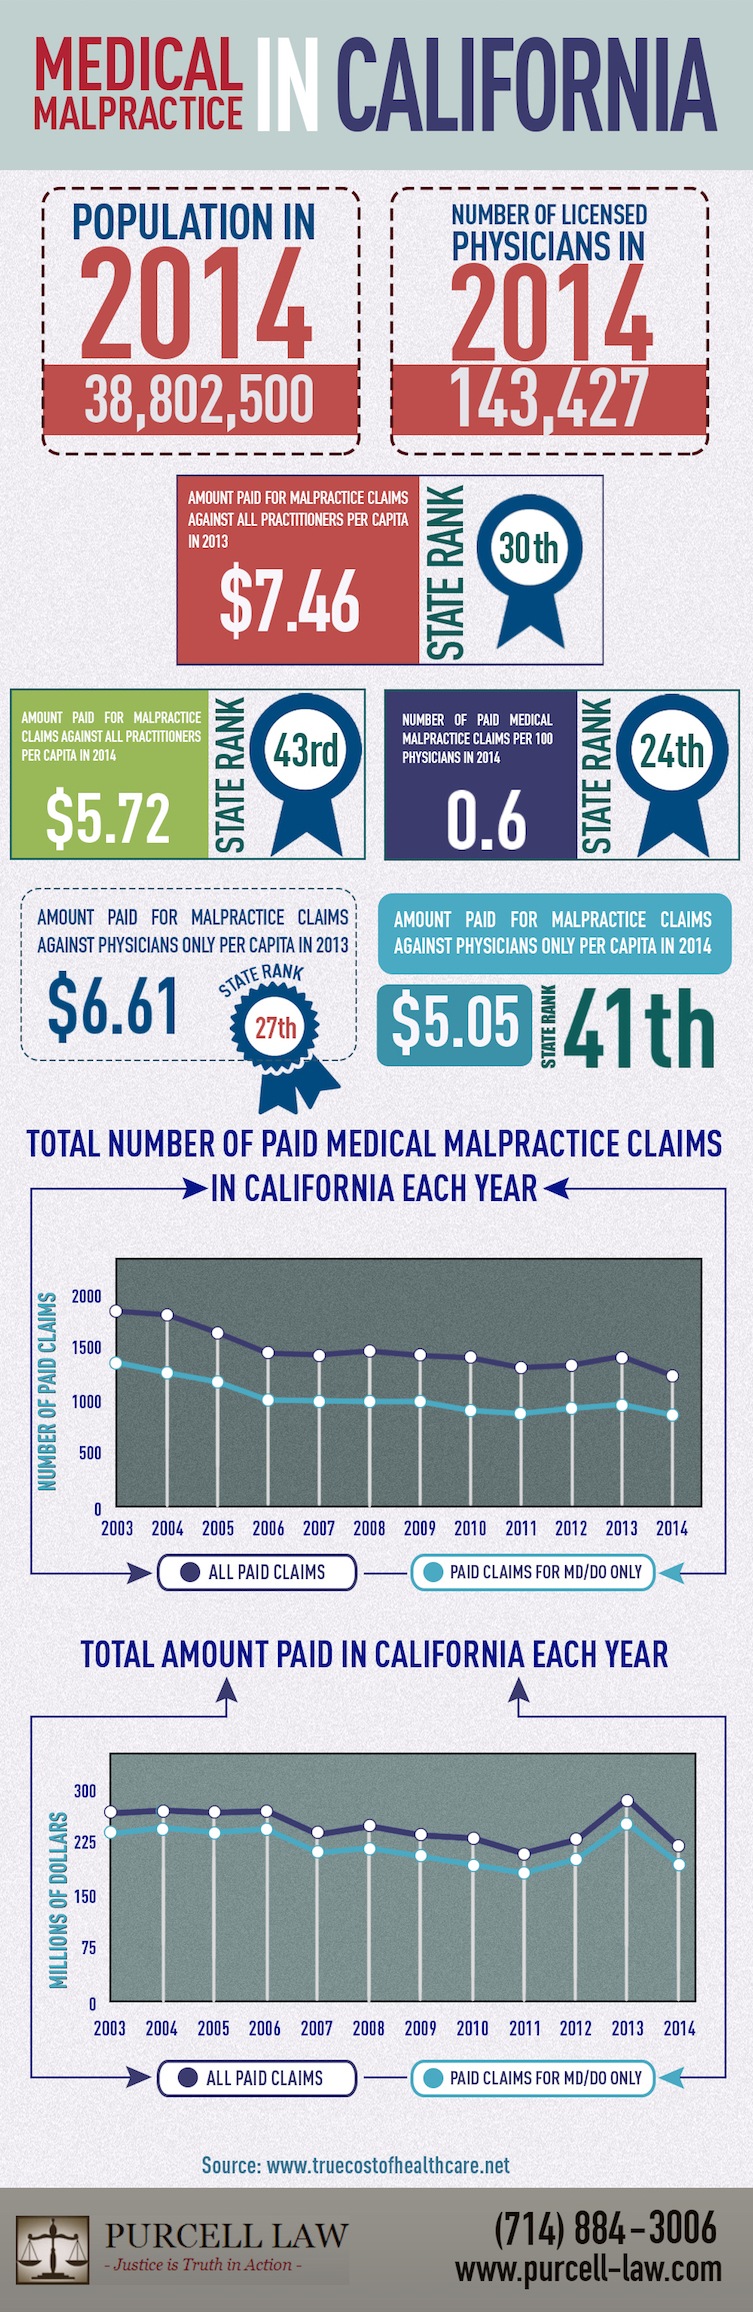 medical malpractice in california